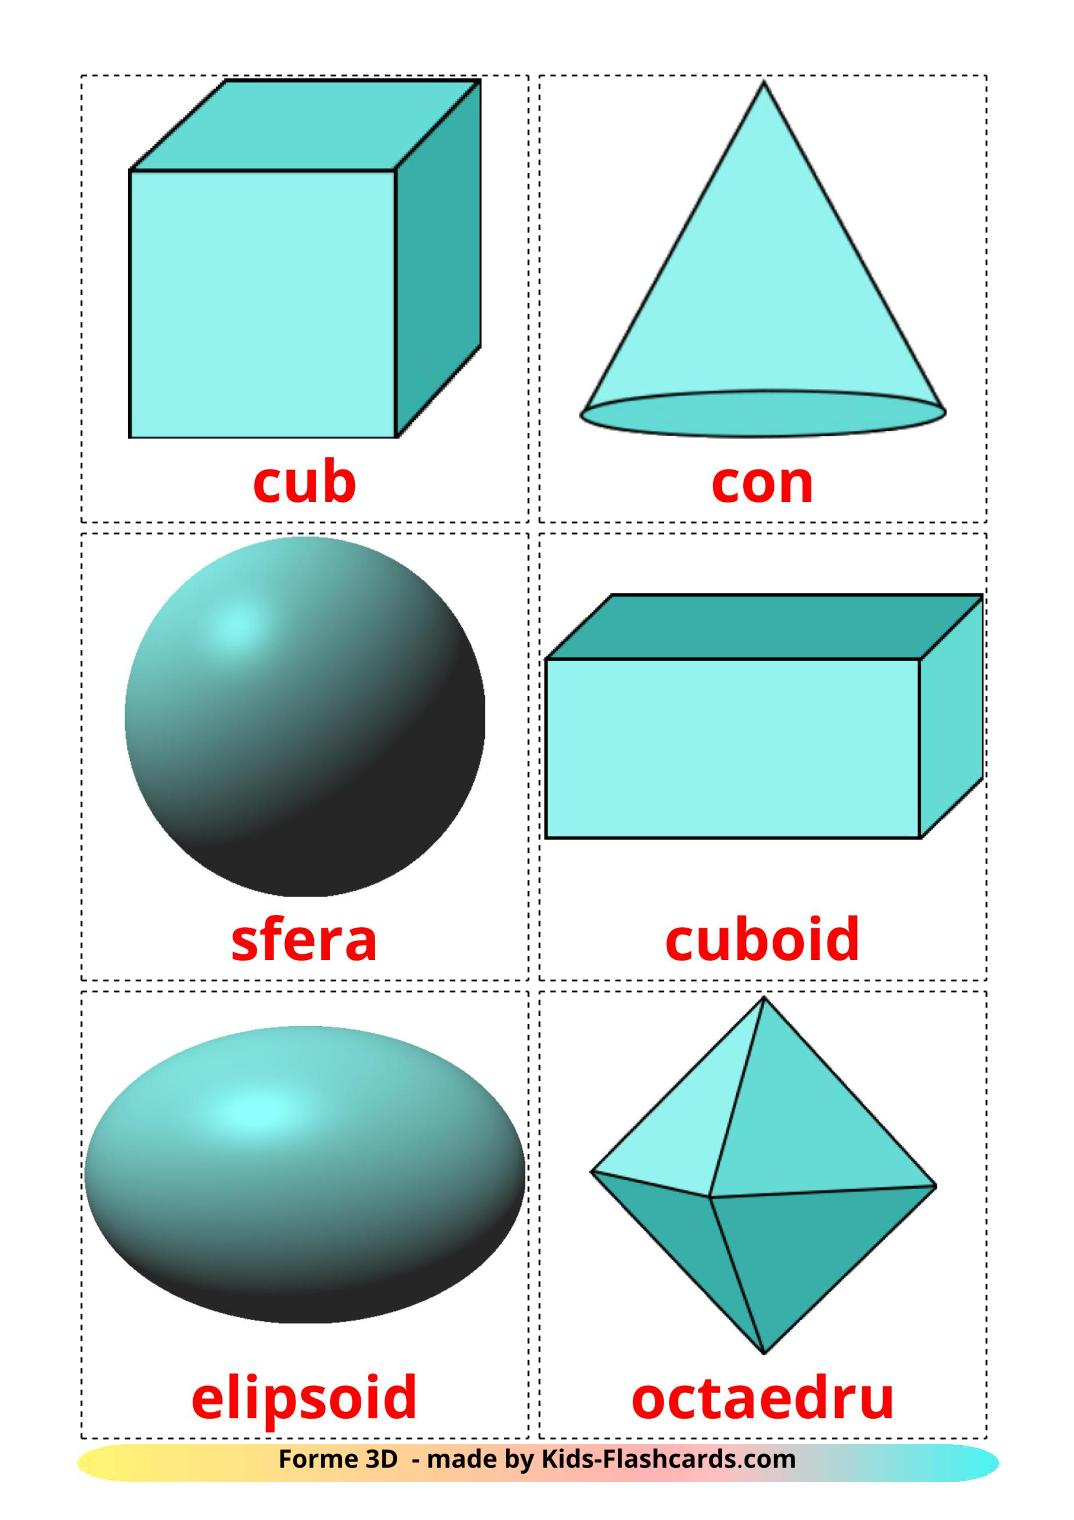 3D Shapes - 17 Free Printable romanian Flashcards